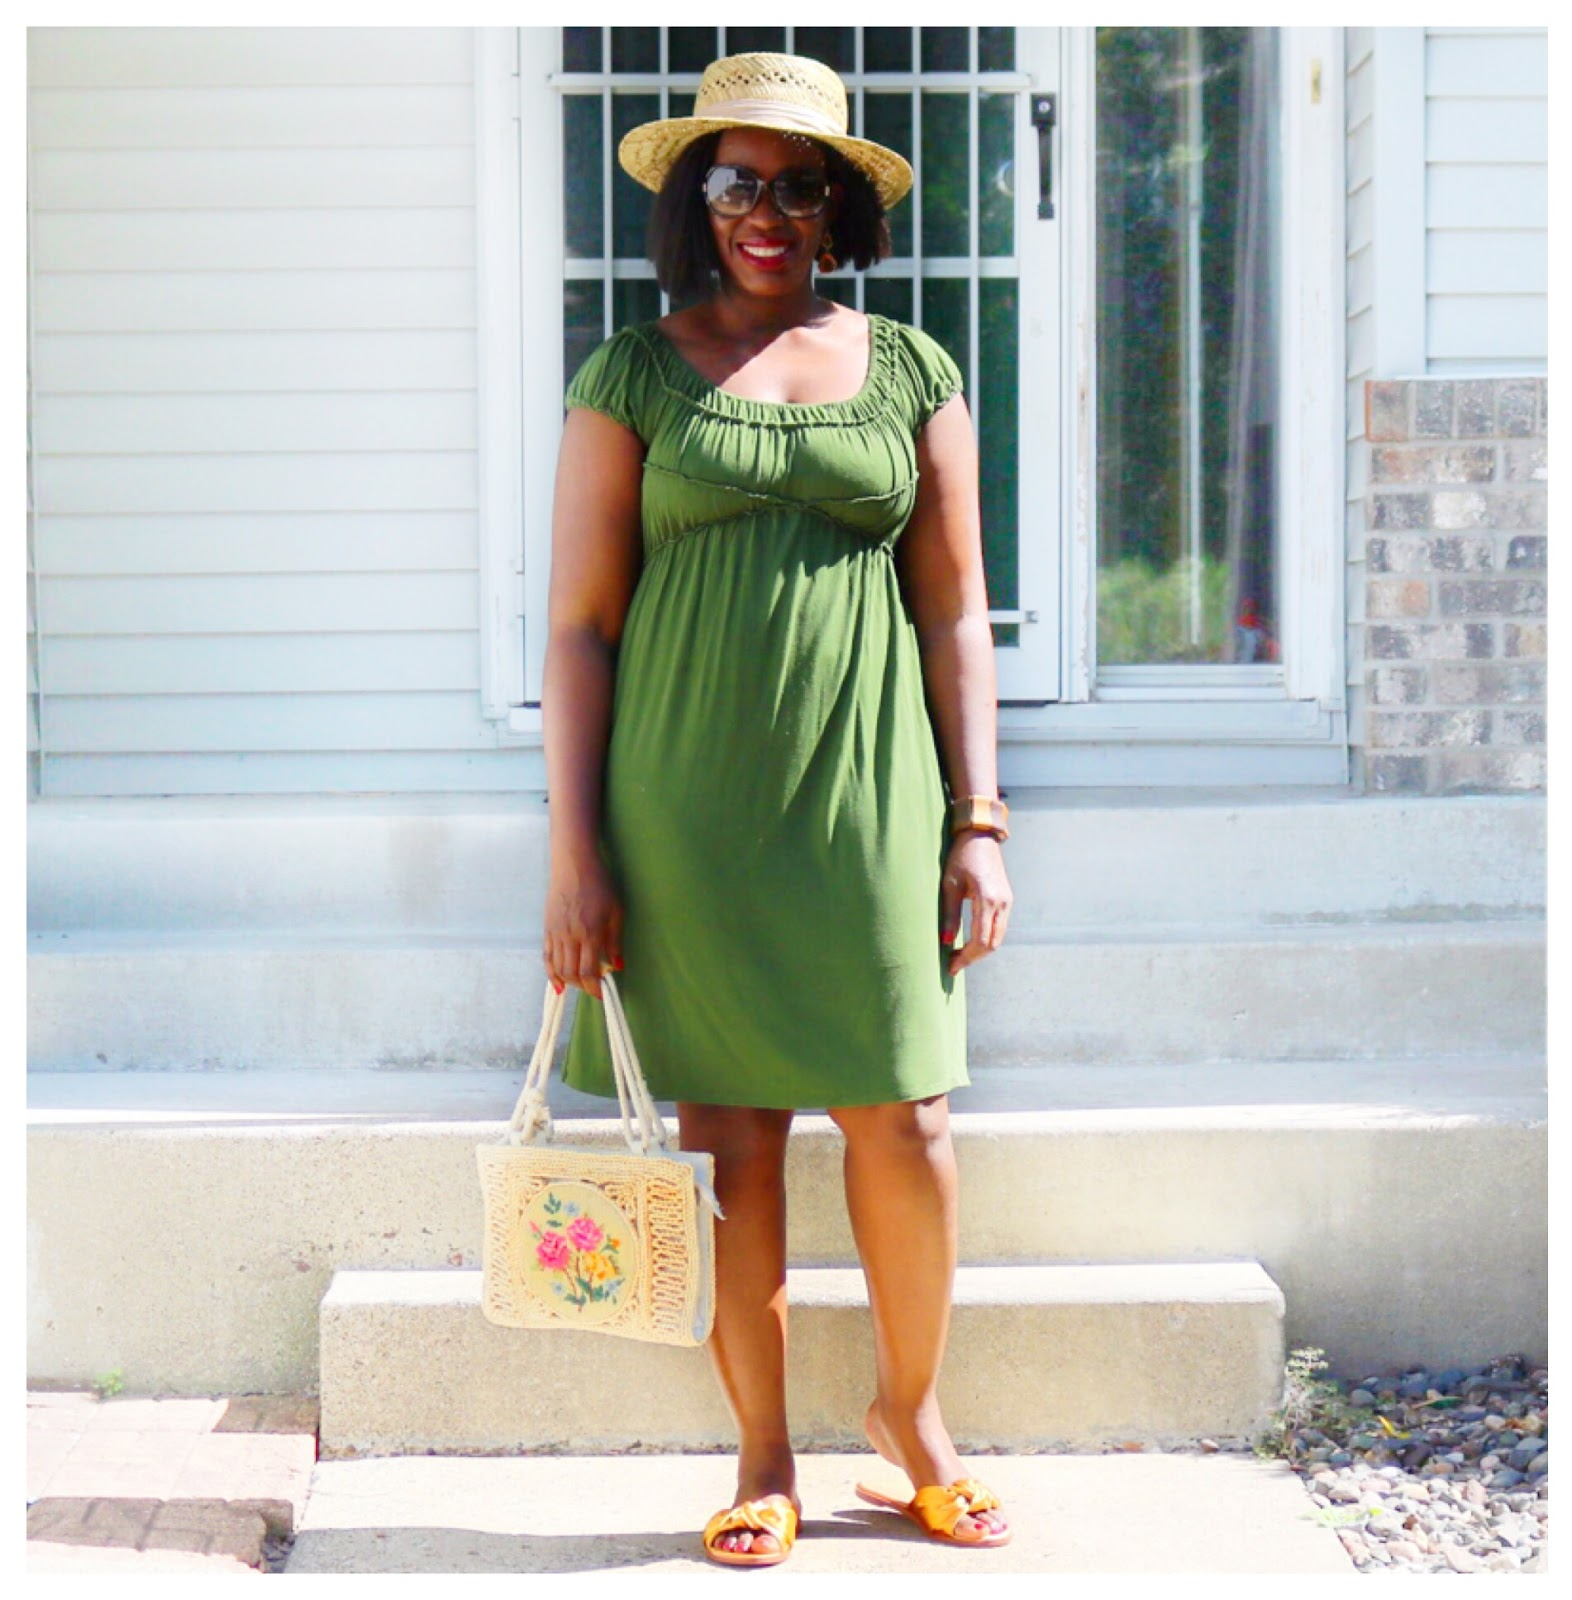 Beauty's Fashion Zone: Olive Color Dress + Orange Color Slides